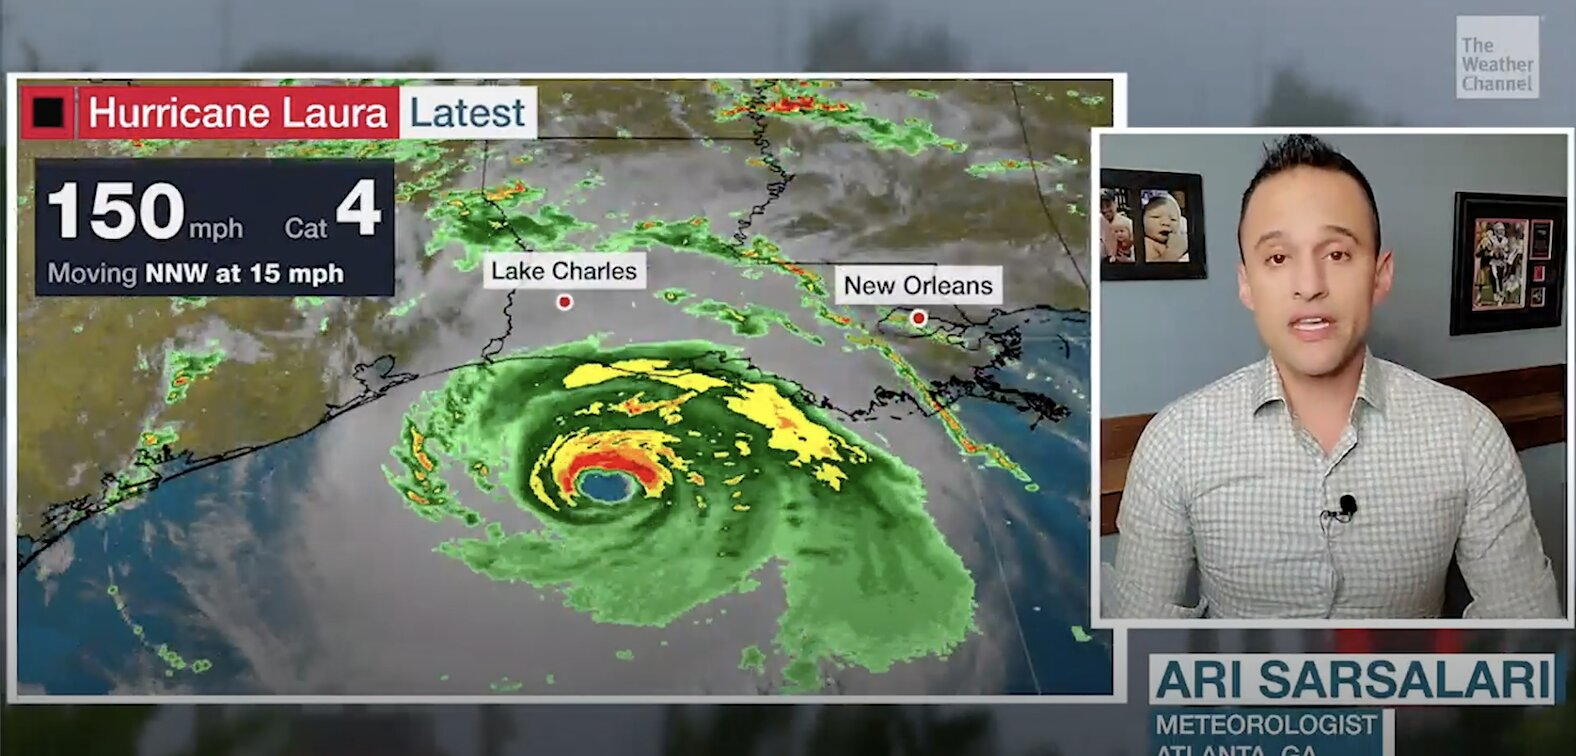 Hurricane Laura Strengthening and Is a Category 4; Catastrophic Strike Ahead Near Louisiana and Texas Border